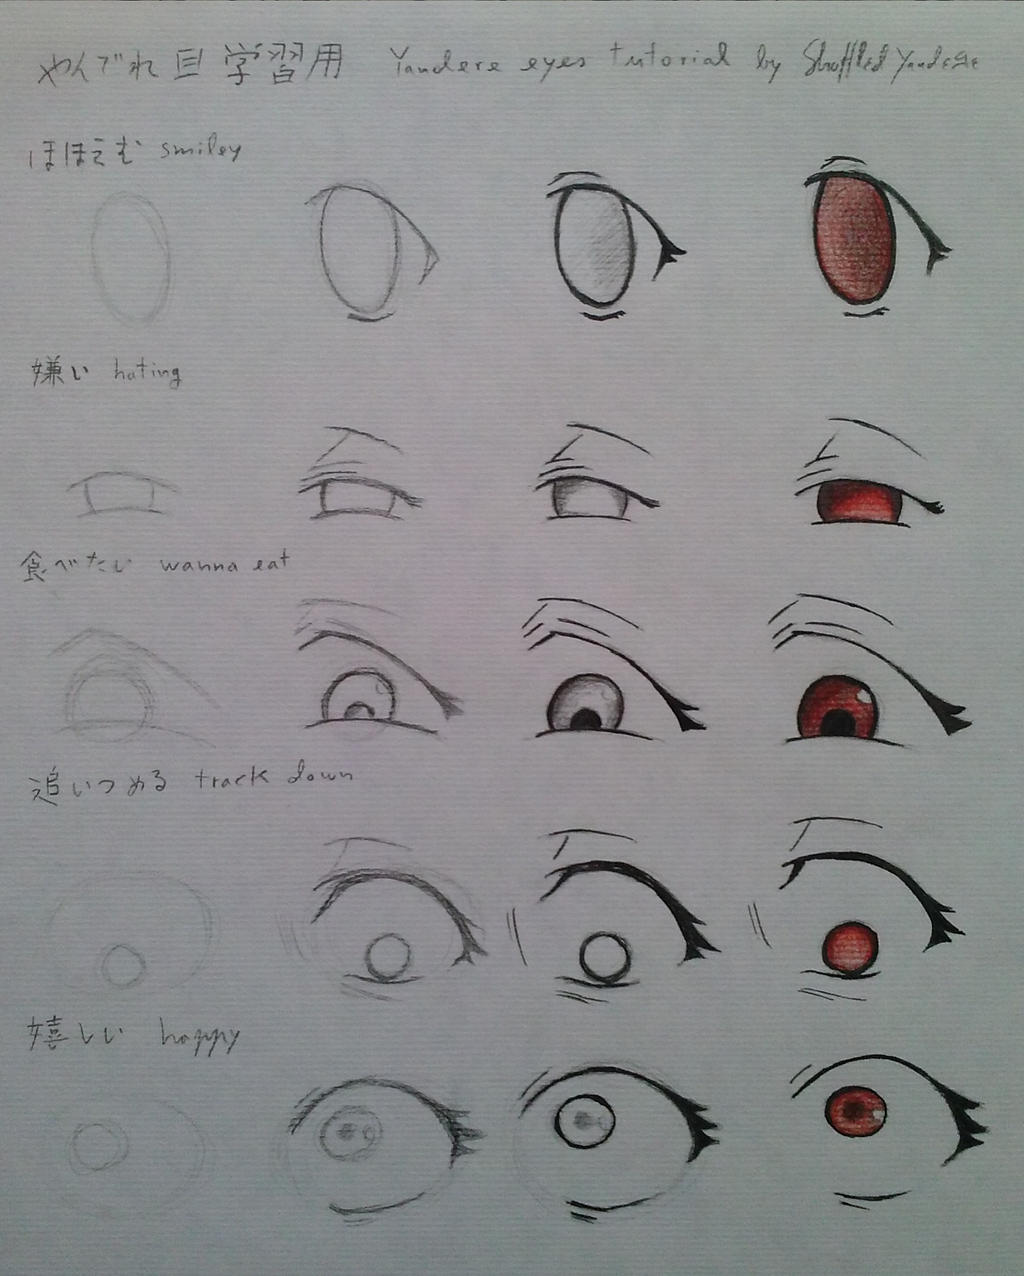 Yandere eyes tutorial by shuffledyandere on deviantart yandere eyes tutorial by shuffledyandere yandere eyes tutorial by shuffledyandere ccuart Image collections